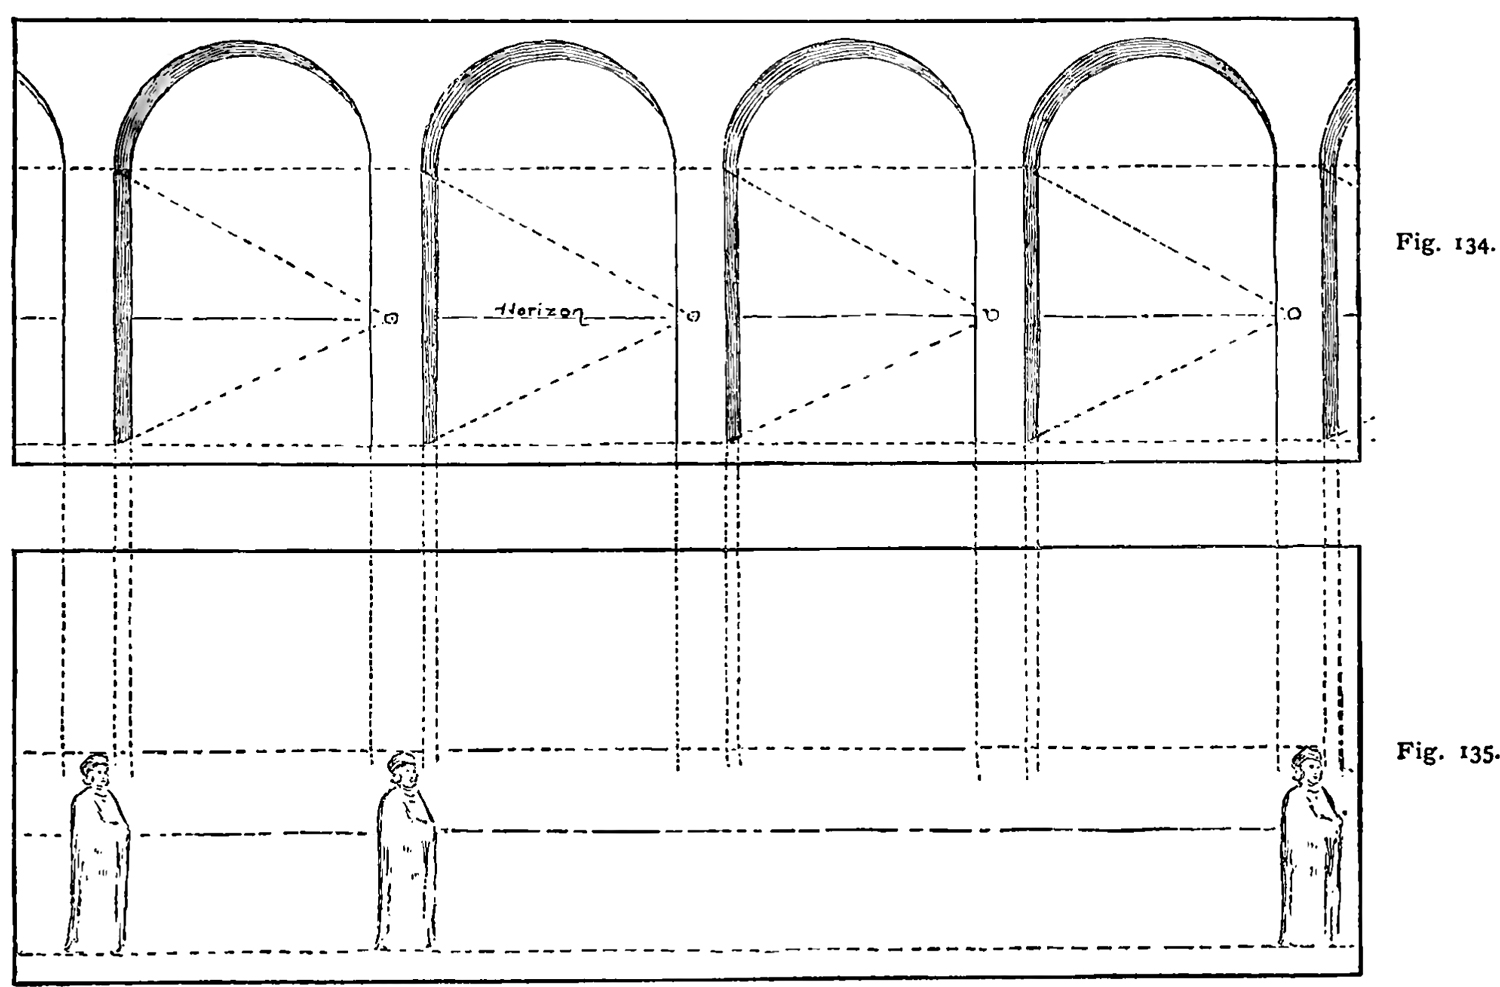 arches like the sistine chapel - 08-howtodraw-curvilinear-perspective